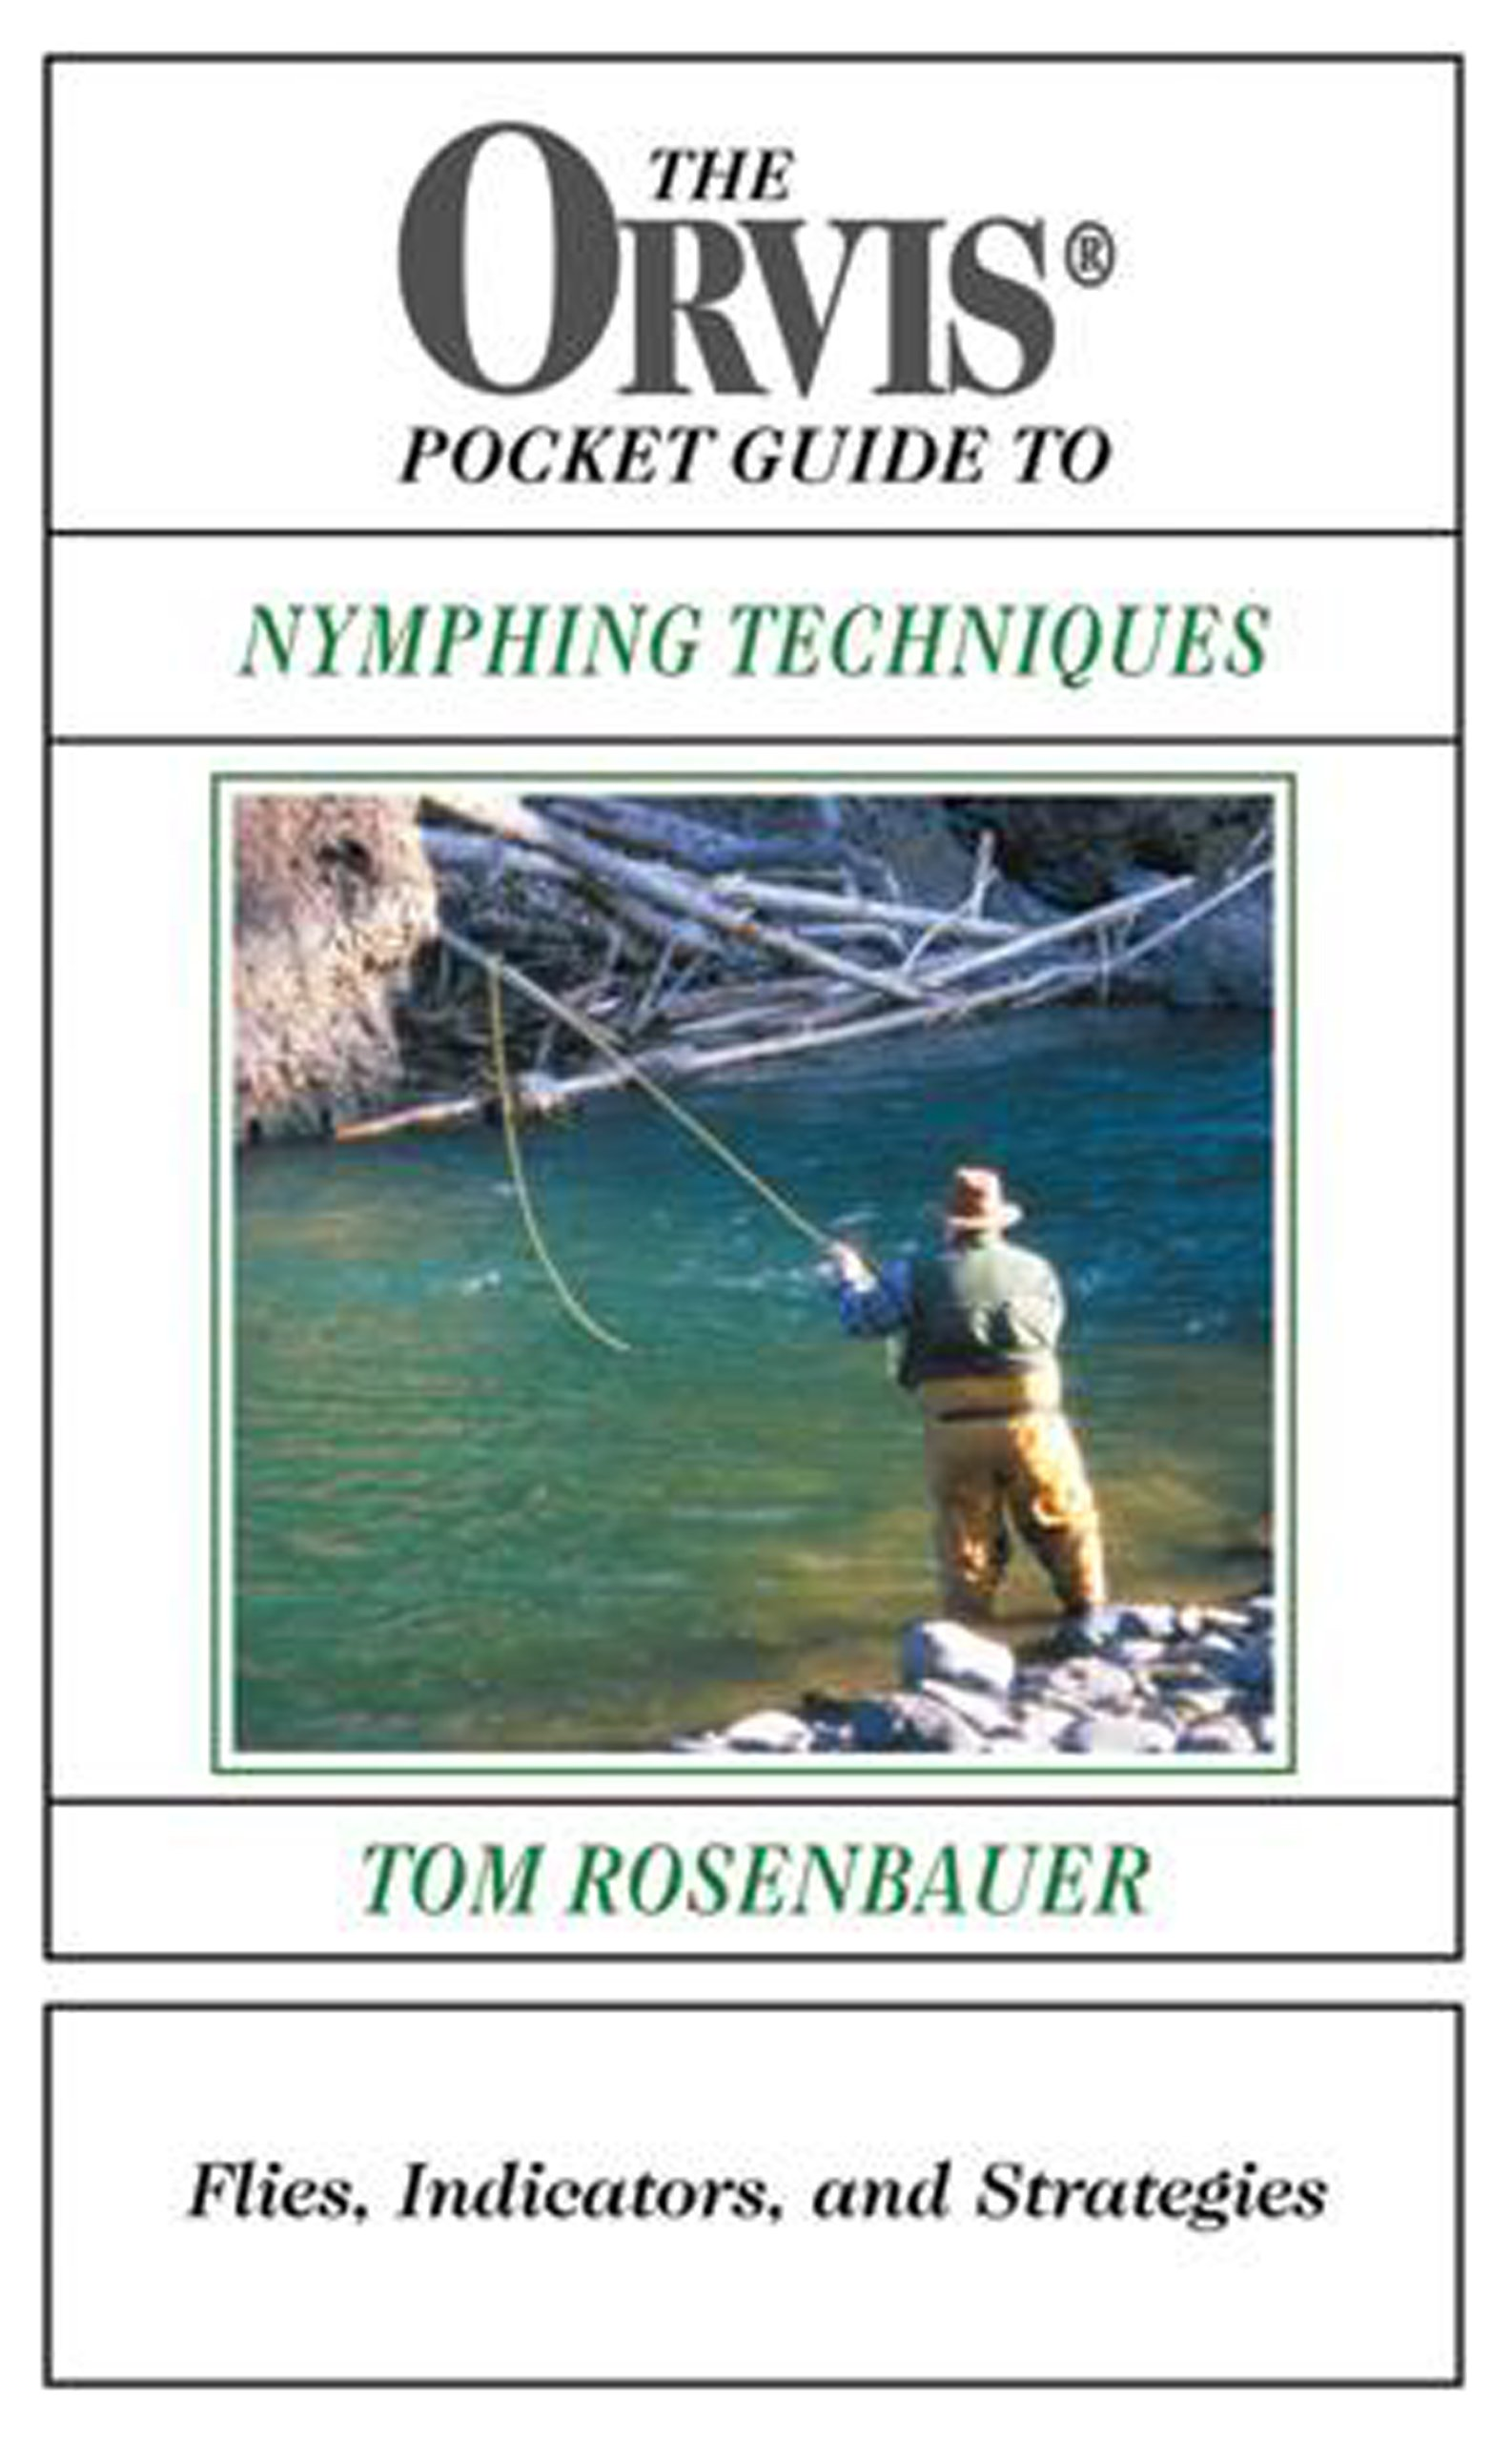 Download The Orvis Pocket Guide to Nymphing Techniques: Flies, Indicators, and Strategies PDF ePub book